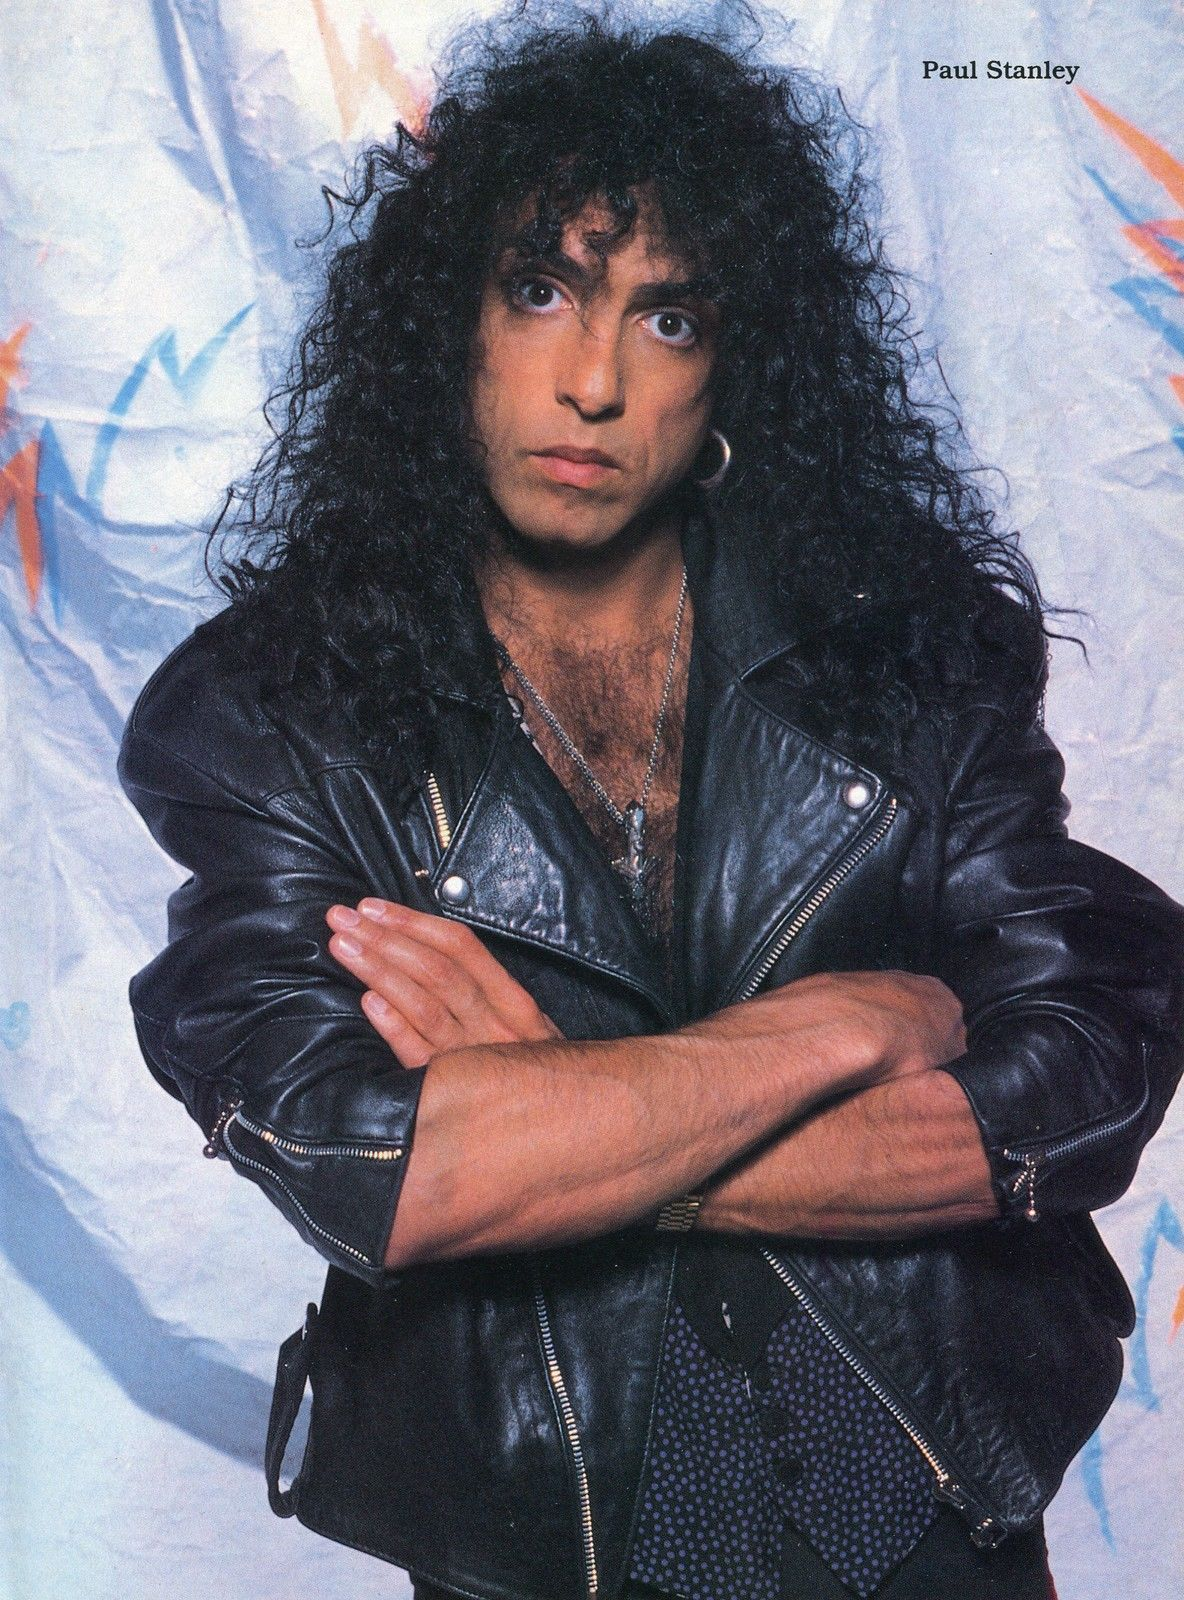 Paul Stanley Pinup clipping 80's Smashes Thrases and Hits ...